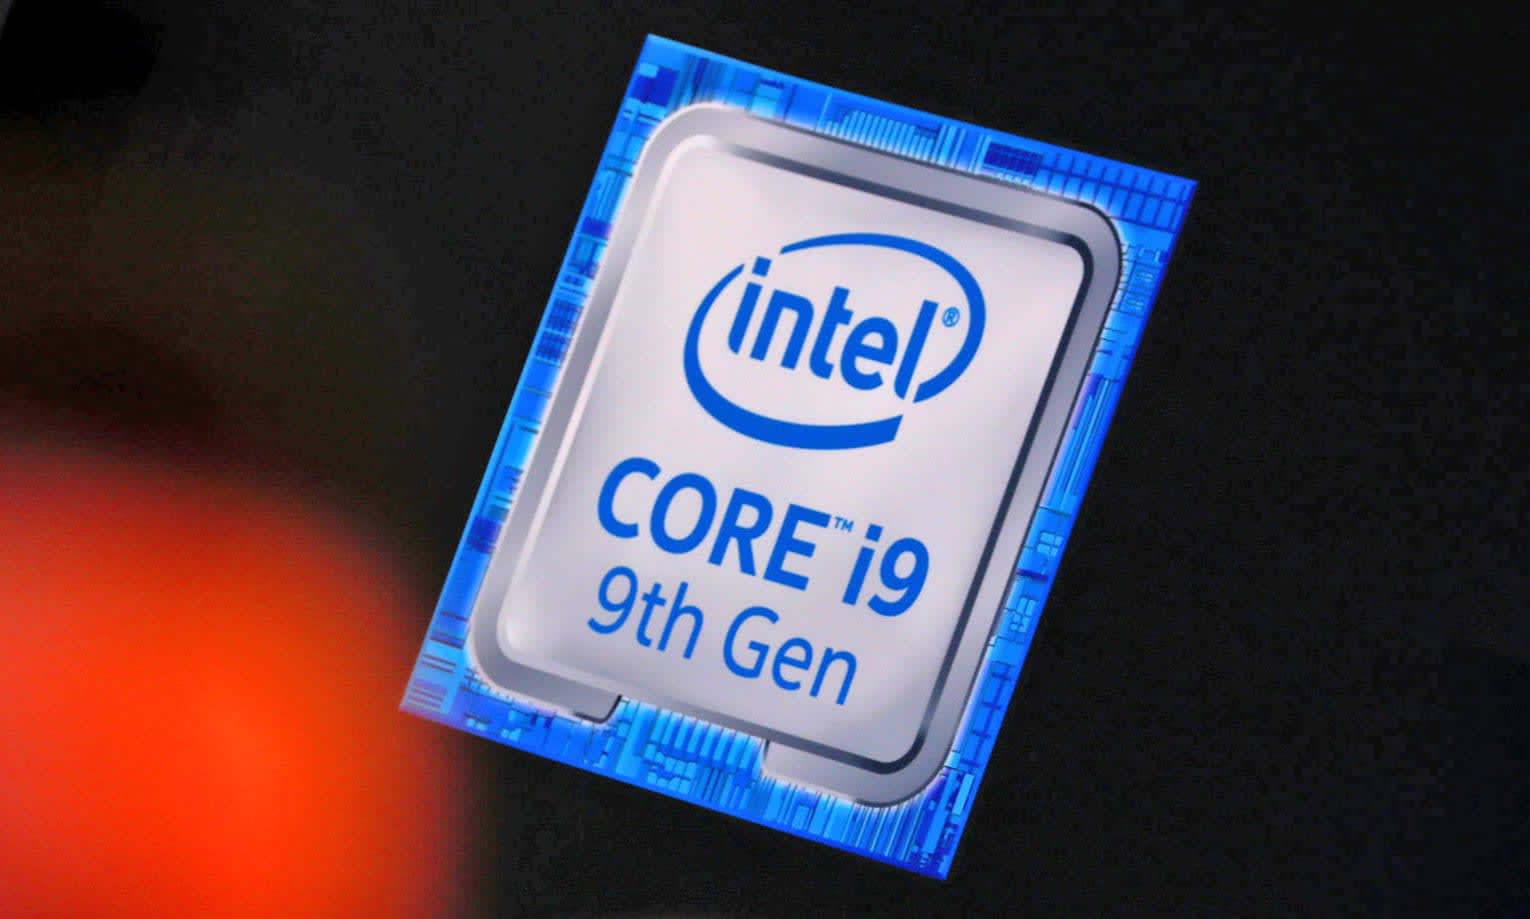 Intel's Performance Maximizer tool overclocks CPUs with one click